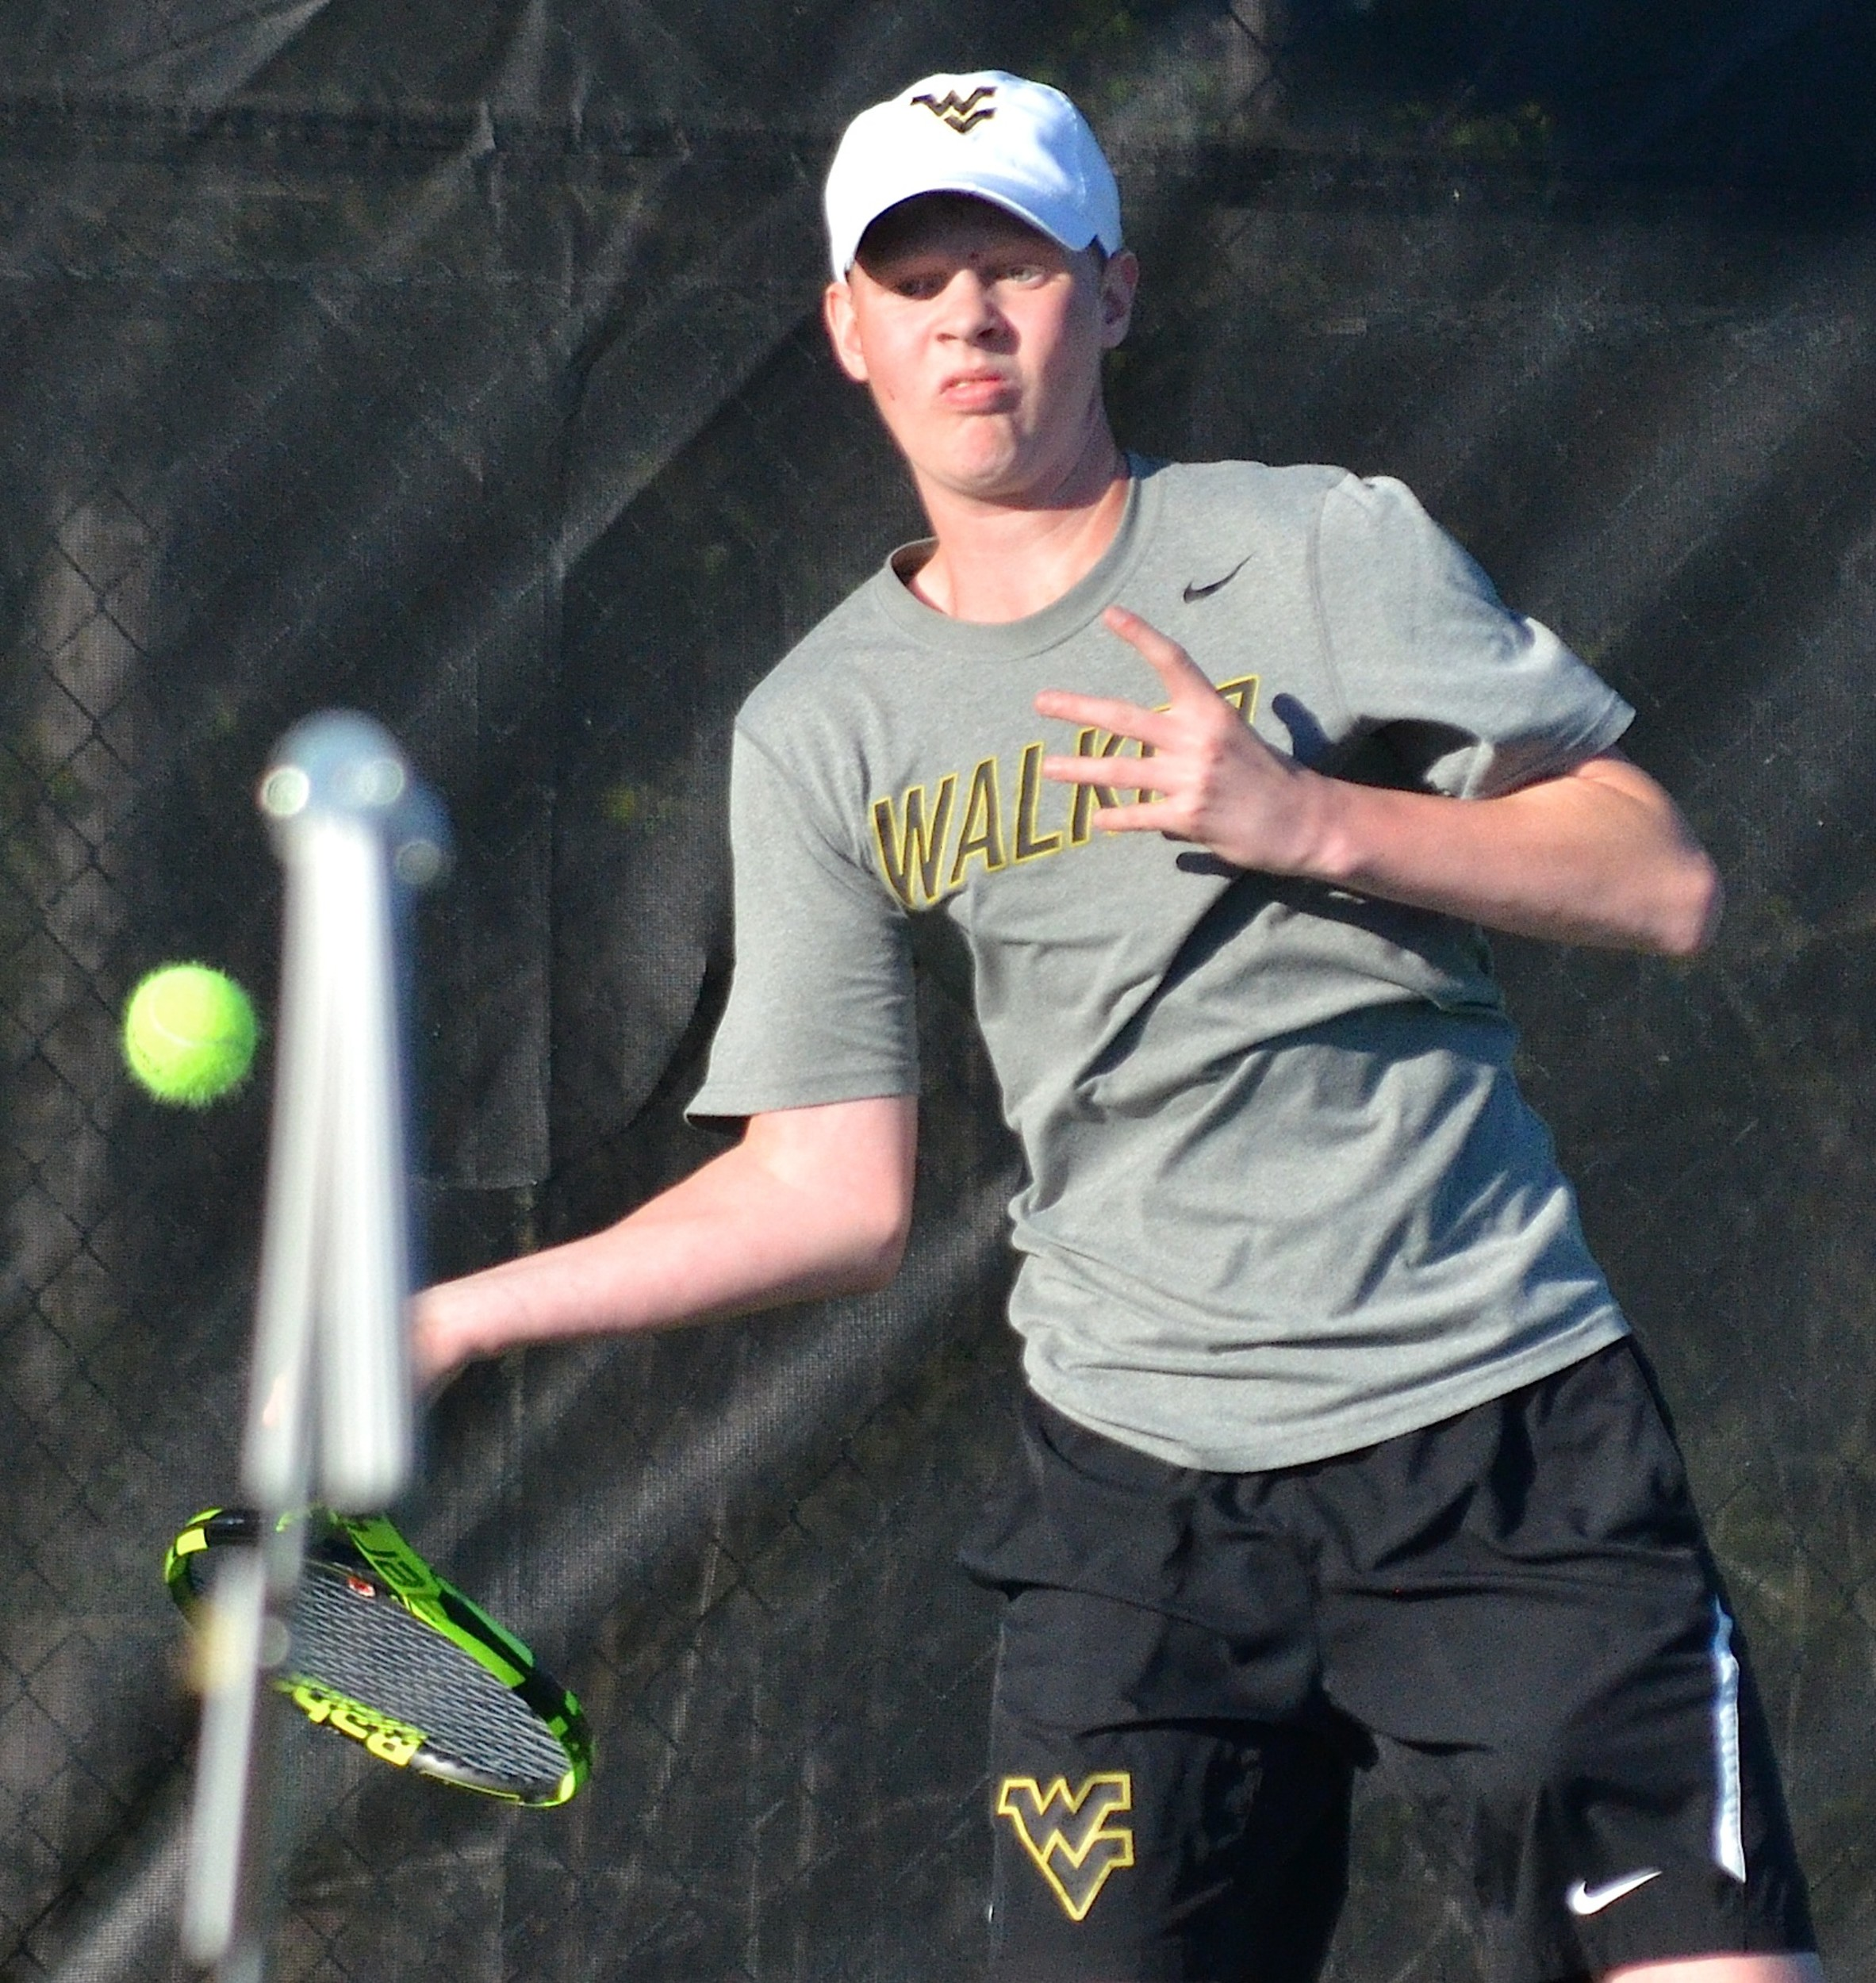 Walker's Mason Woodman won the No. 3 single section title at Valley Park on Tuesday. The Vikings swept through the tournament and will play at the state tournament next week.